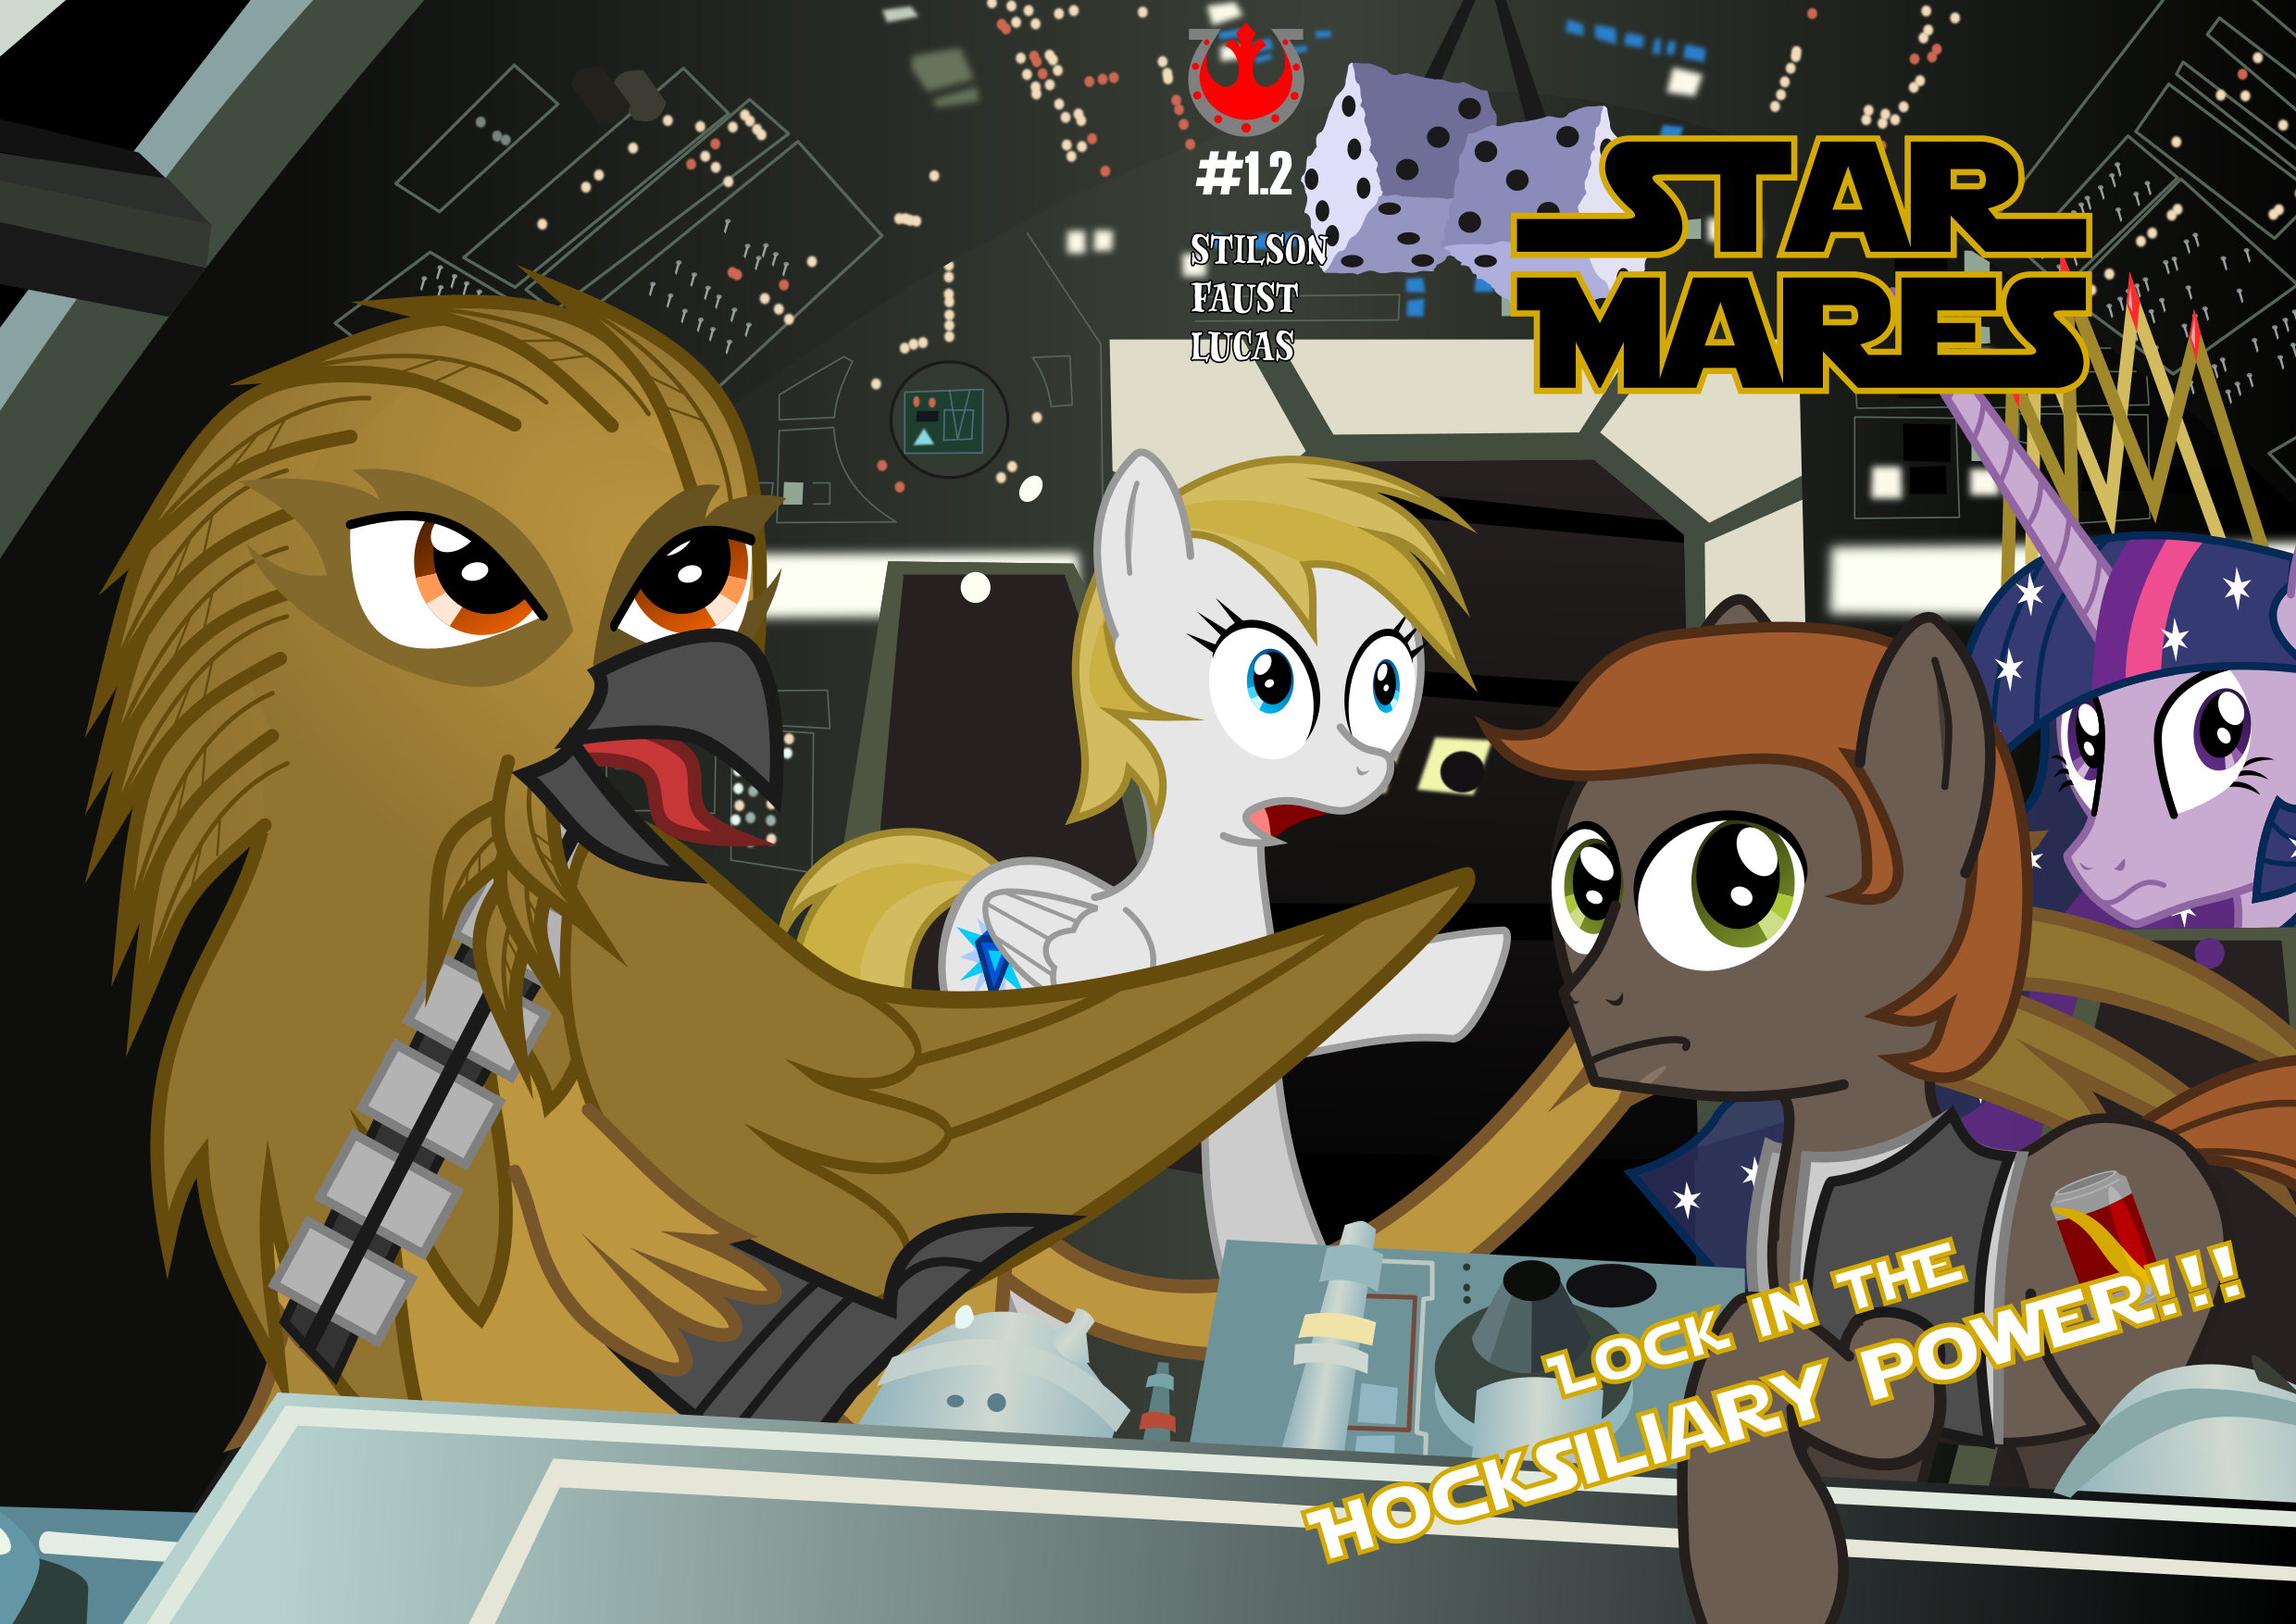 Star Mares 1.2: Hocksiliary Power